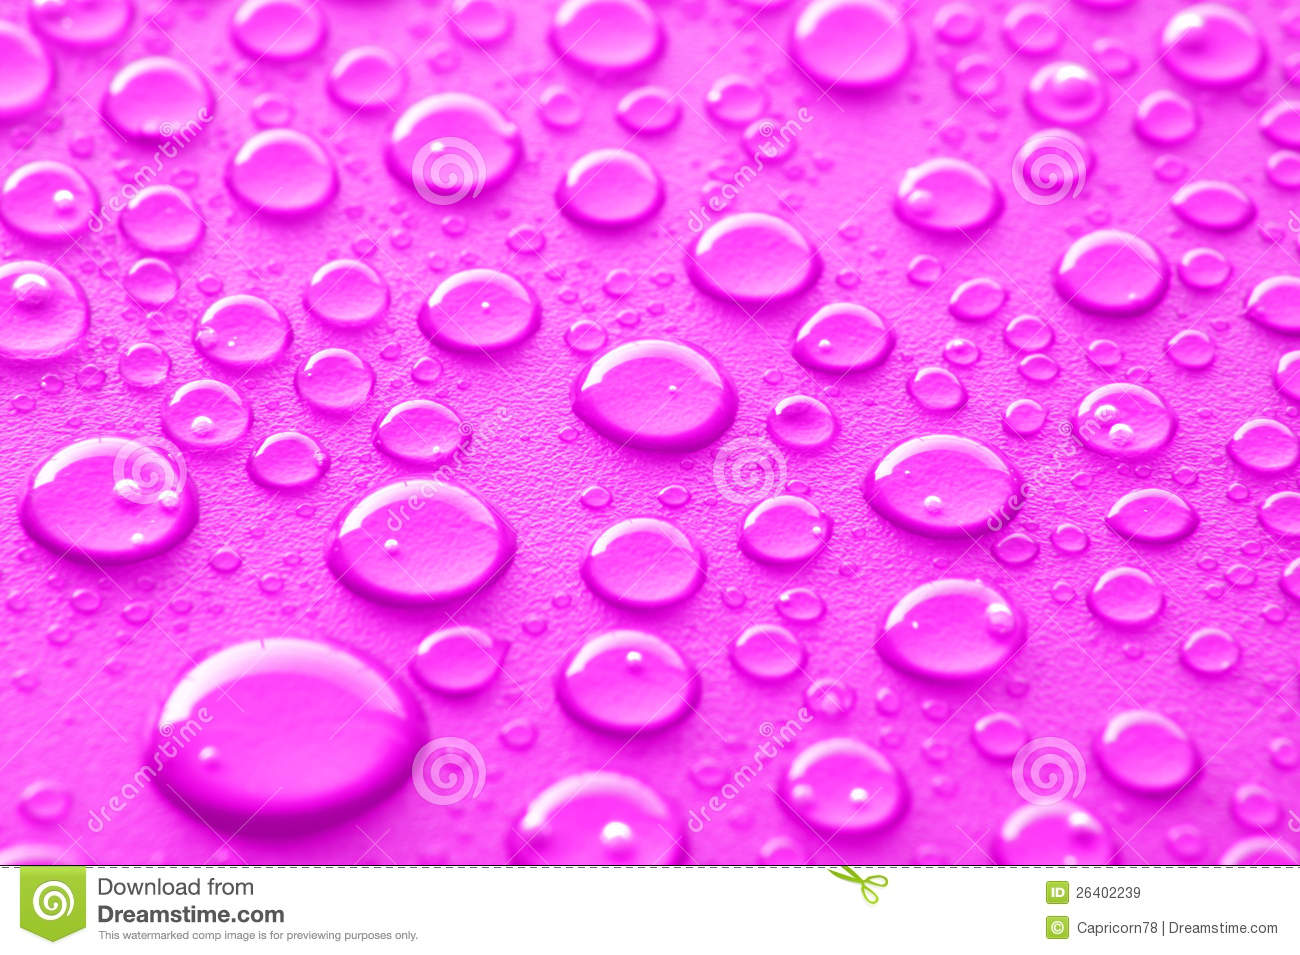 pink colour wallpapers free download